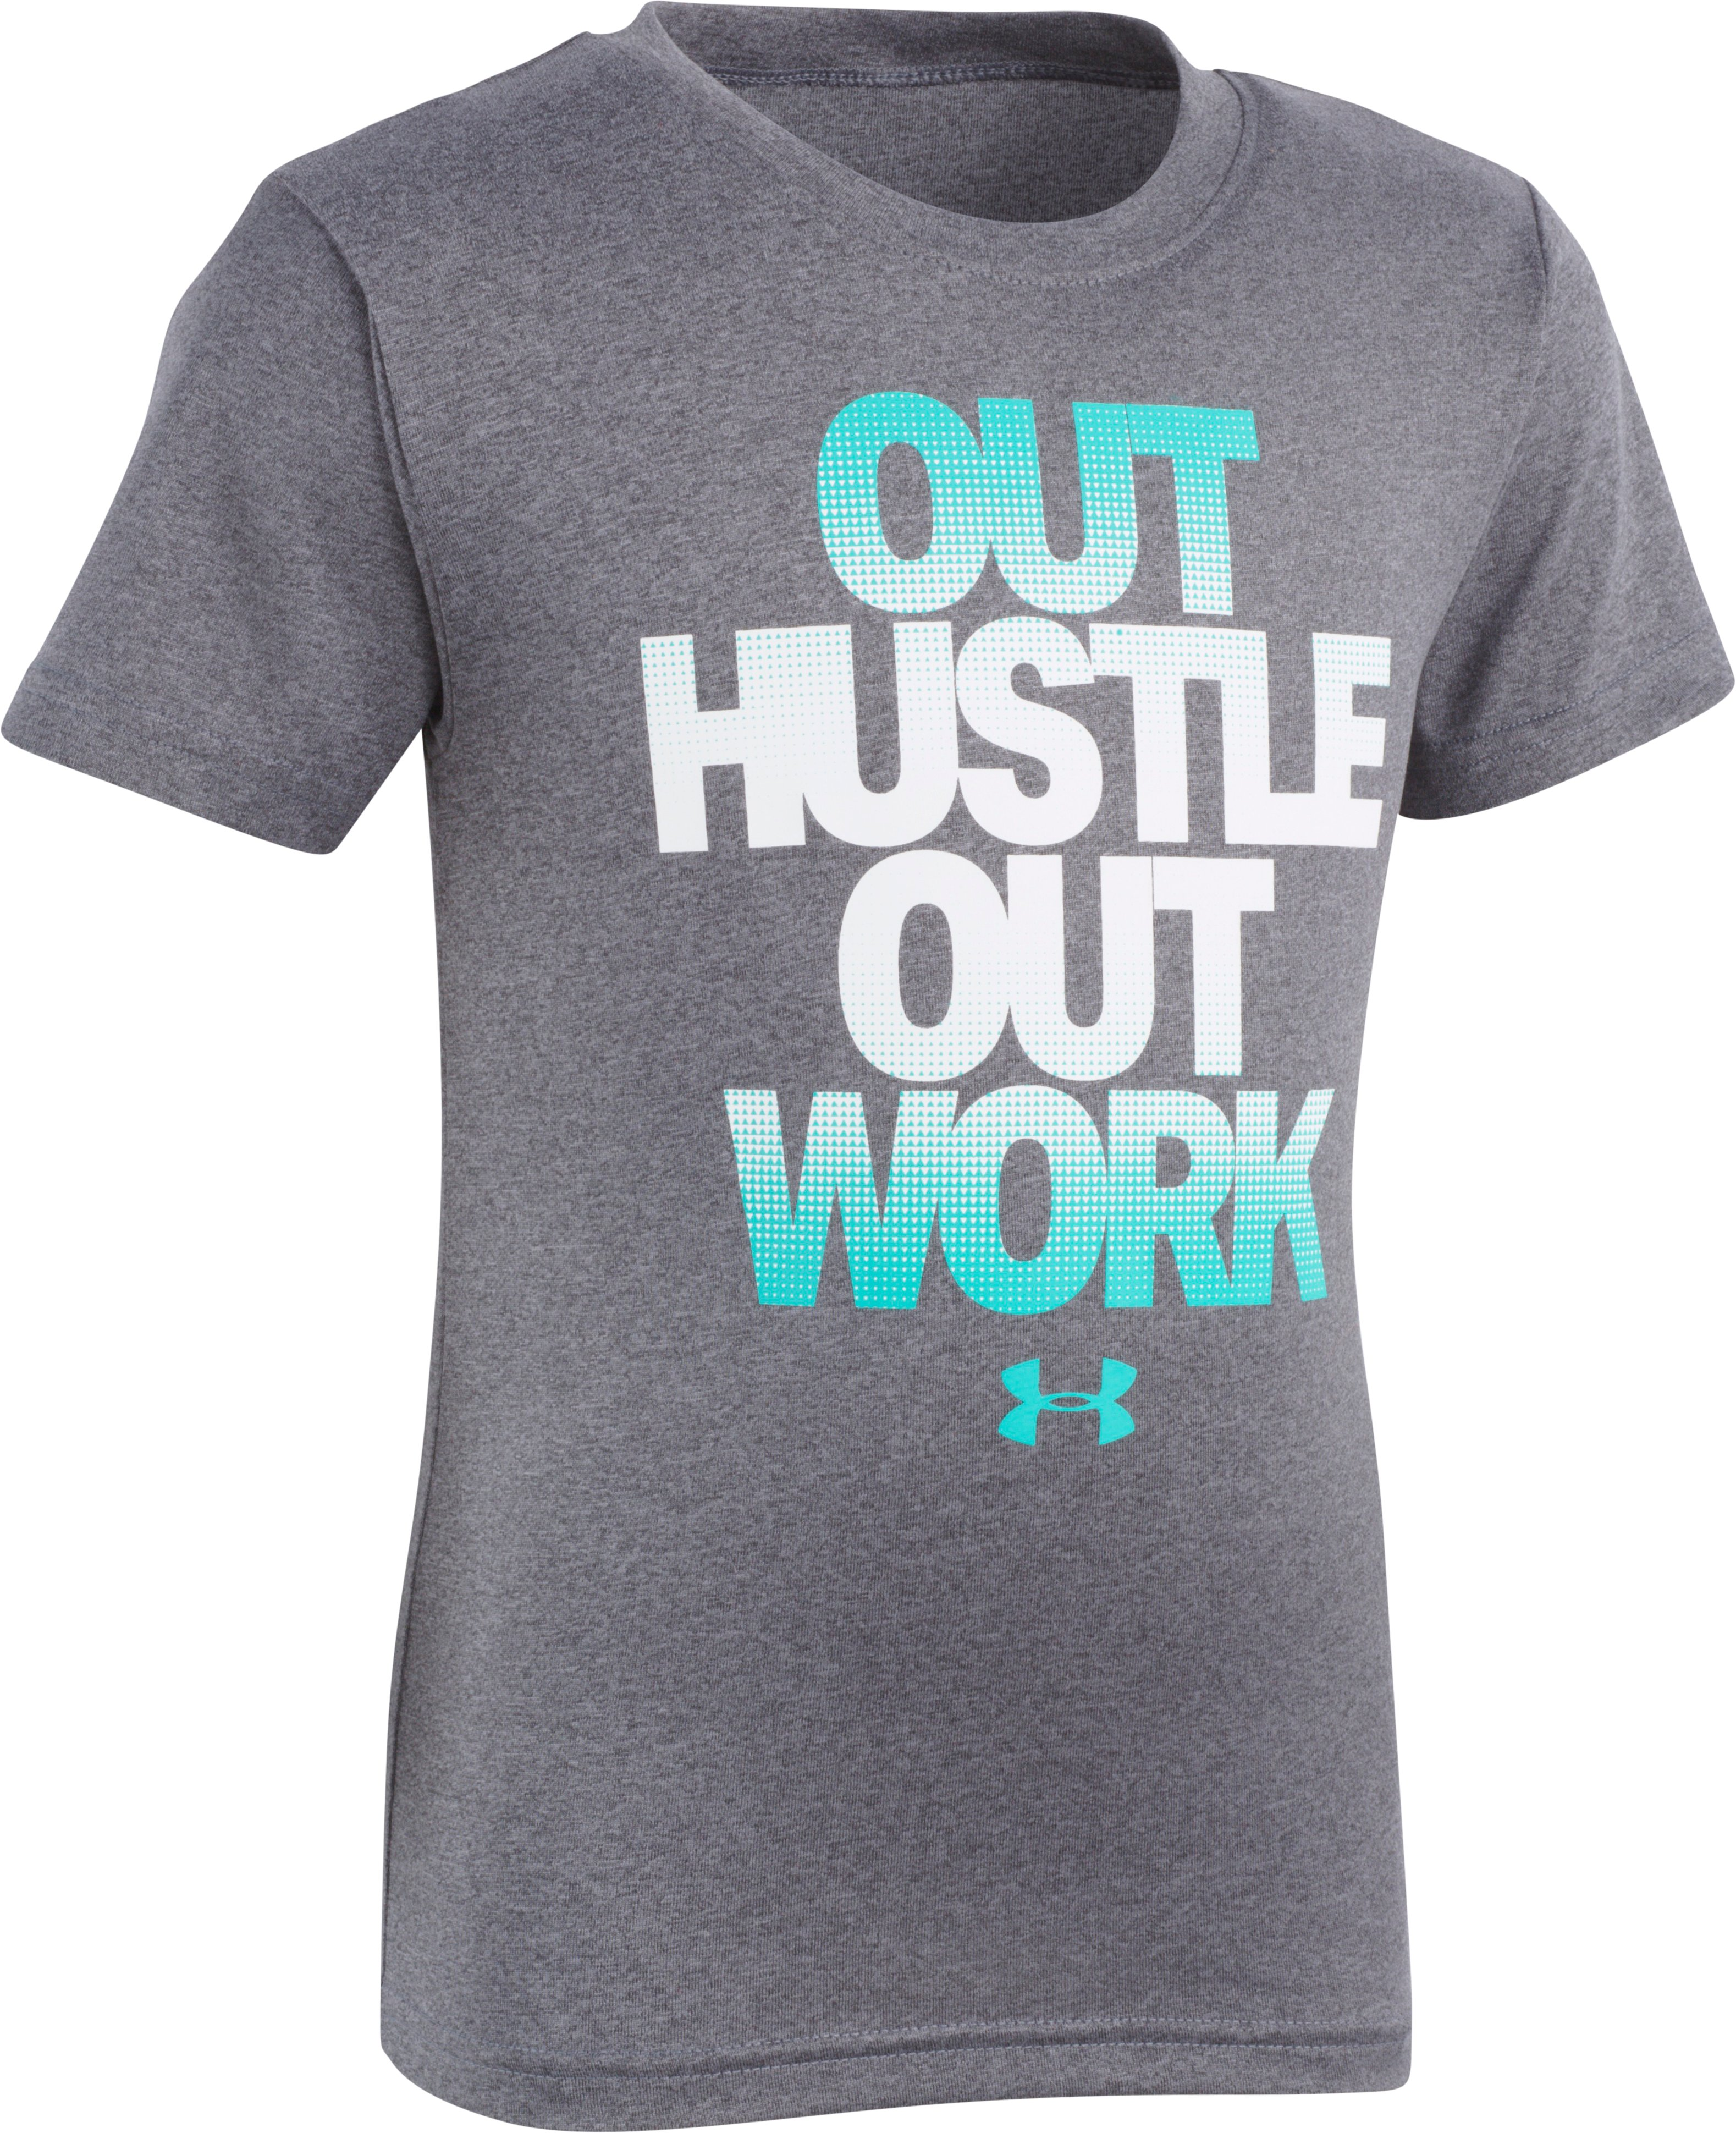 Boys' Toddler UA Out Hustle Out Work Short Sleeve, Charcoal Medium Heather, zoomed